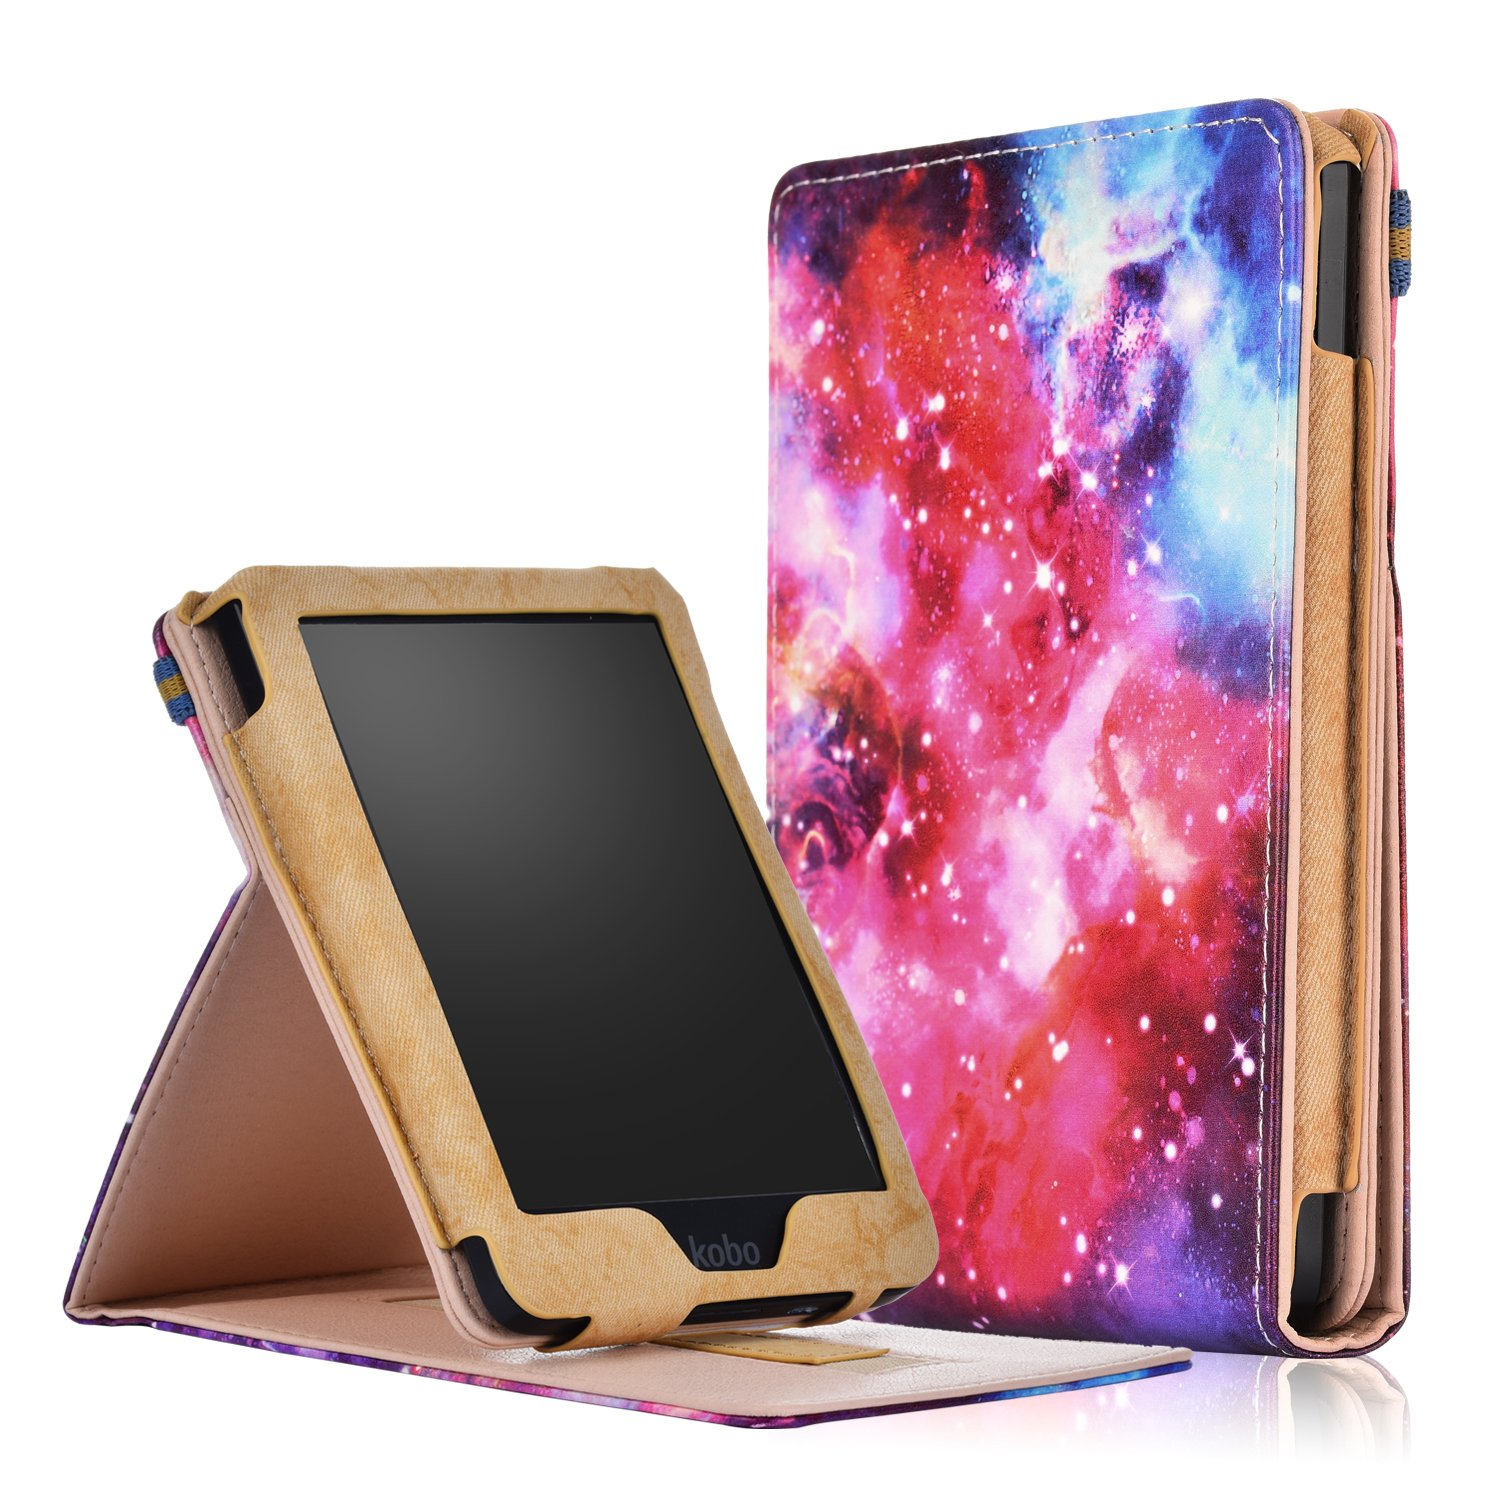 Kobo Ereader Clara HD Case, Gylint Premium Leather Business Slim Folding Stand Folio Cover with Auto Wake/Sleep Multiple Viewing Angles for Kobo Ereader Clara HD 6.0i Tablet (Tower)